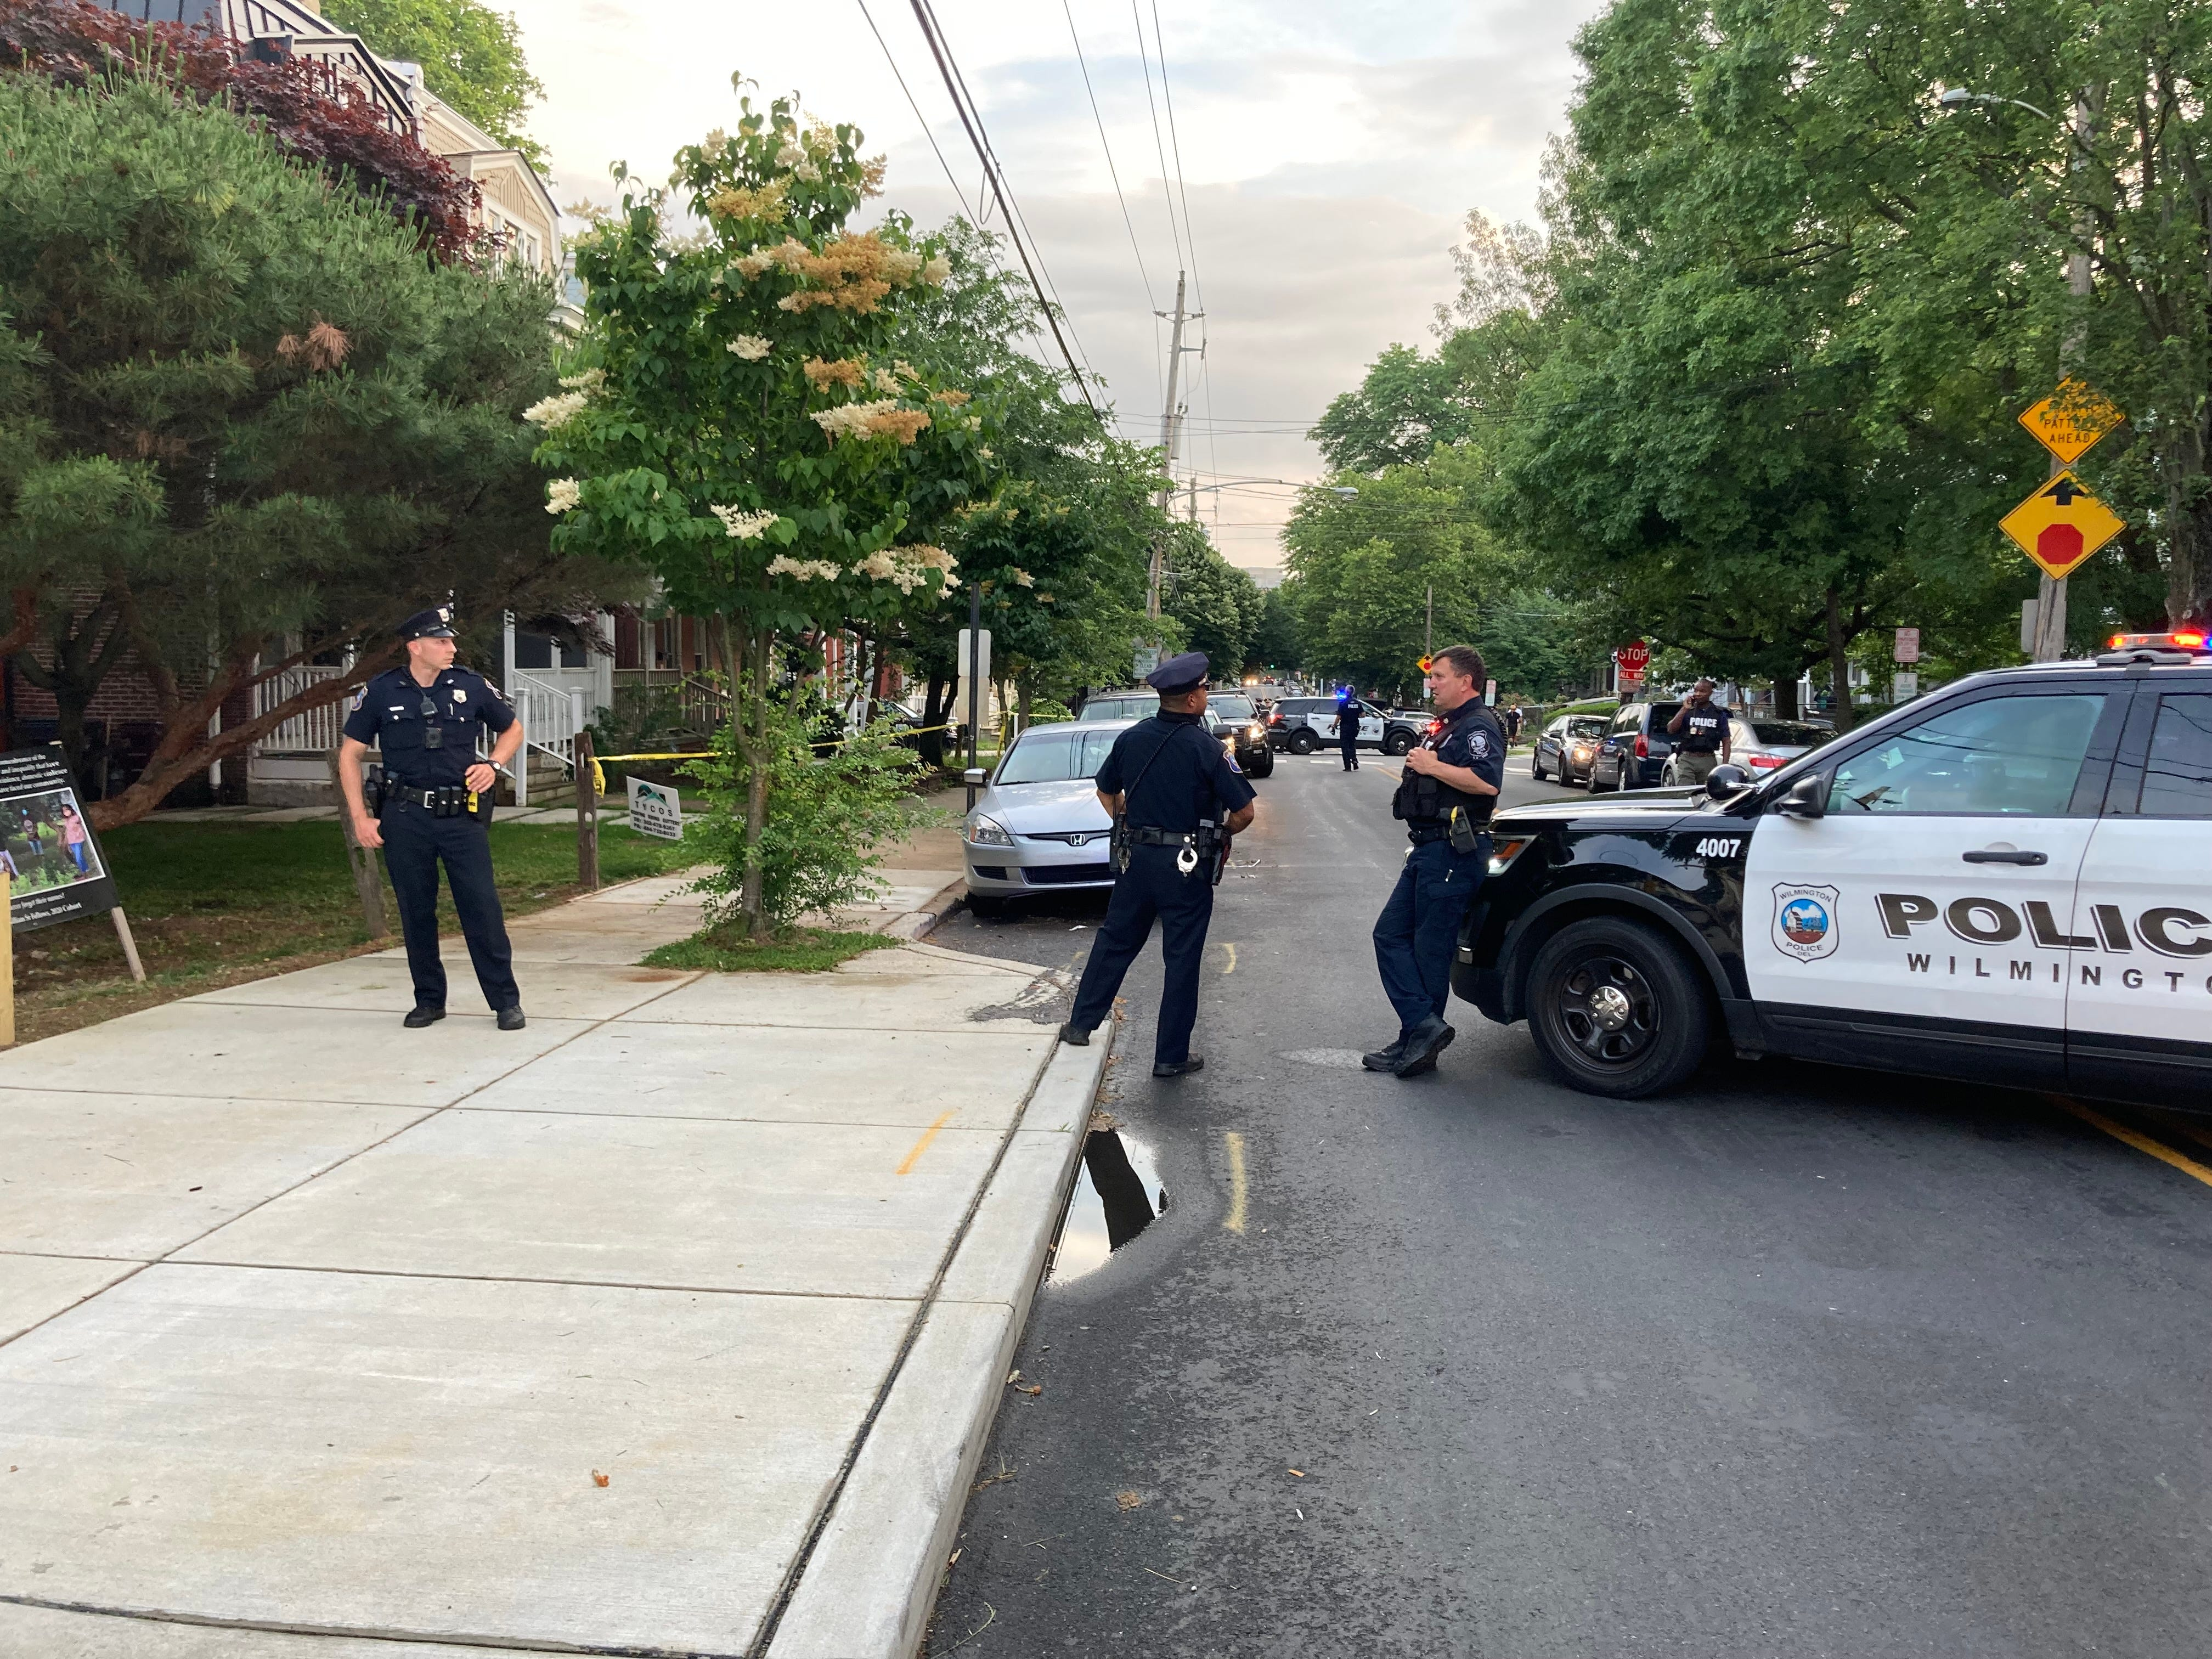 Double shooting Tuesday night makes 9 shooting victims in 8 days in Wilmington